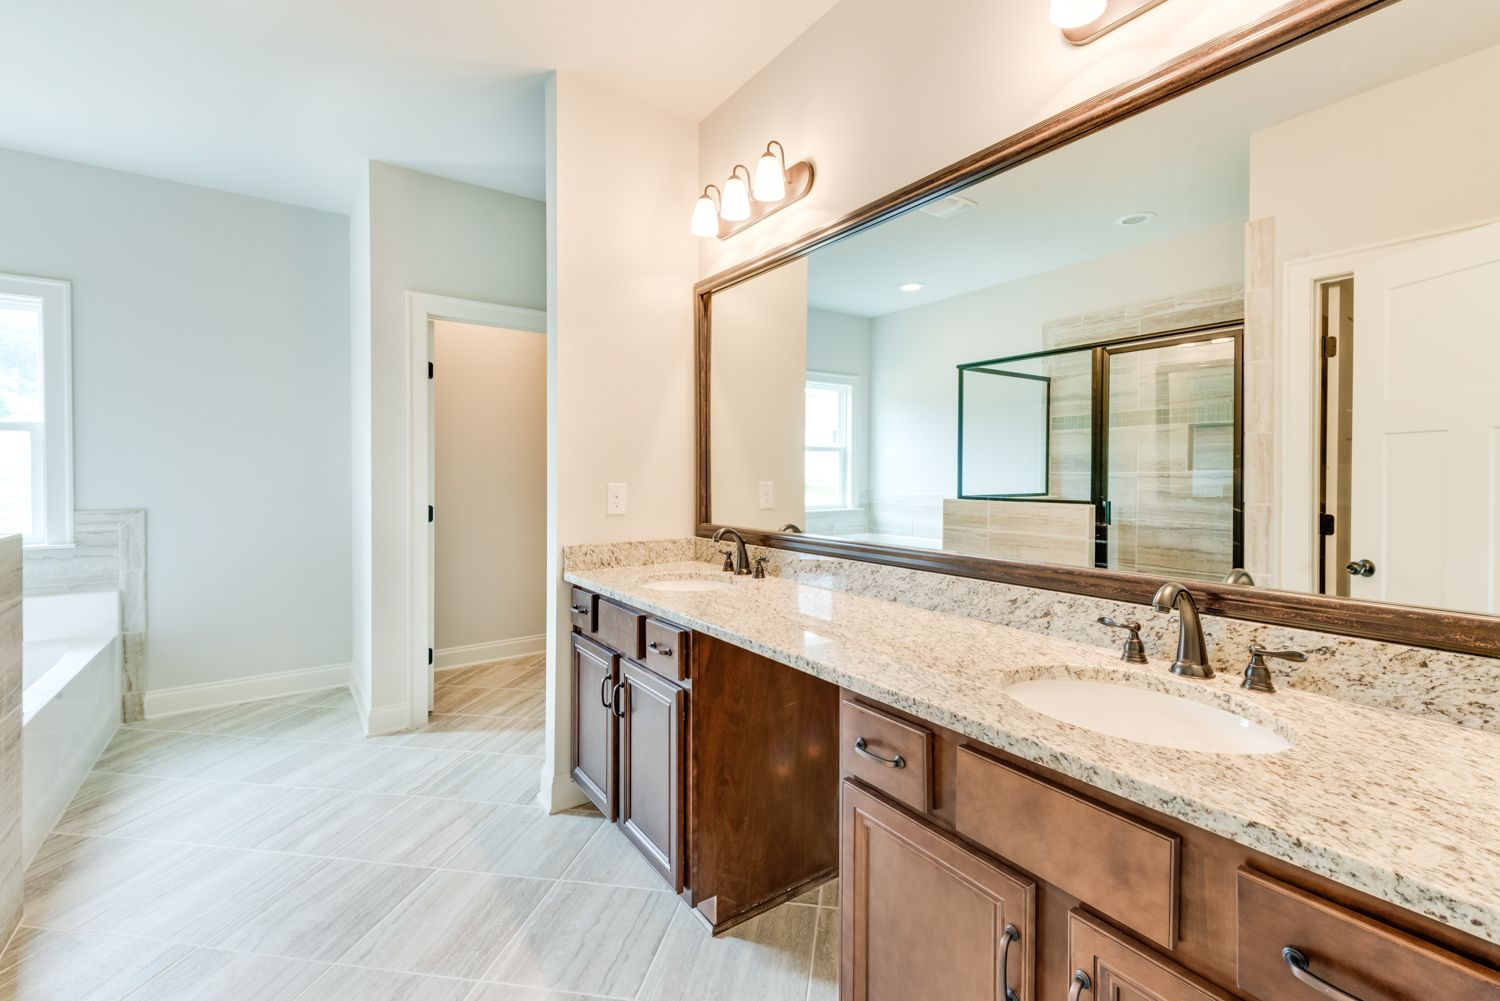 This Master Bathroom Has A Long Double Vanity With A Framed Mirror